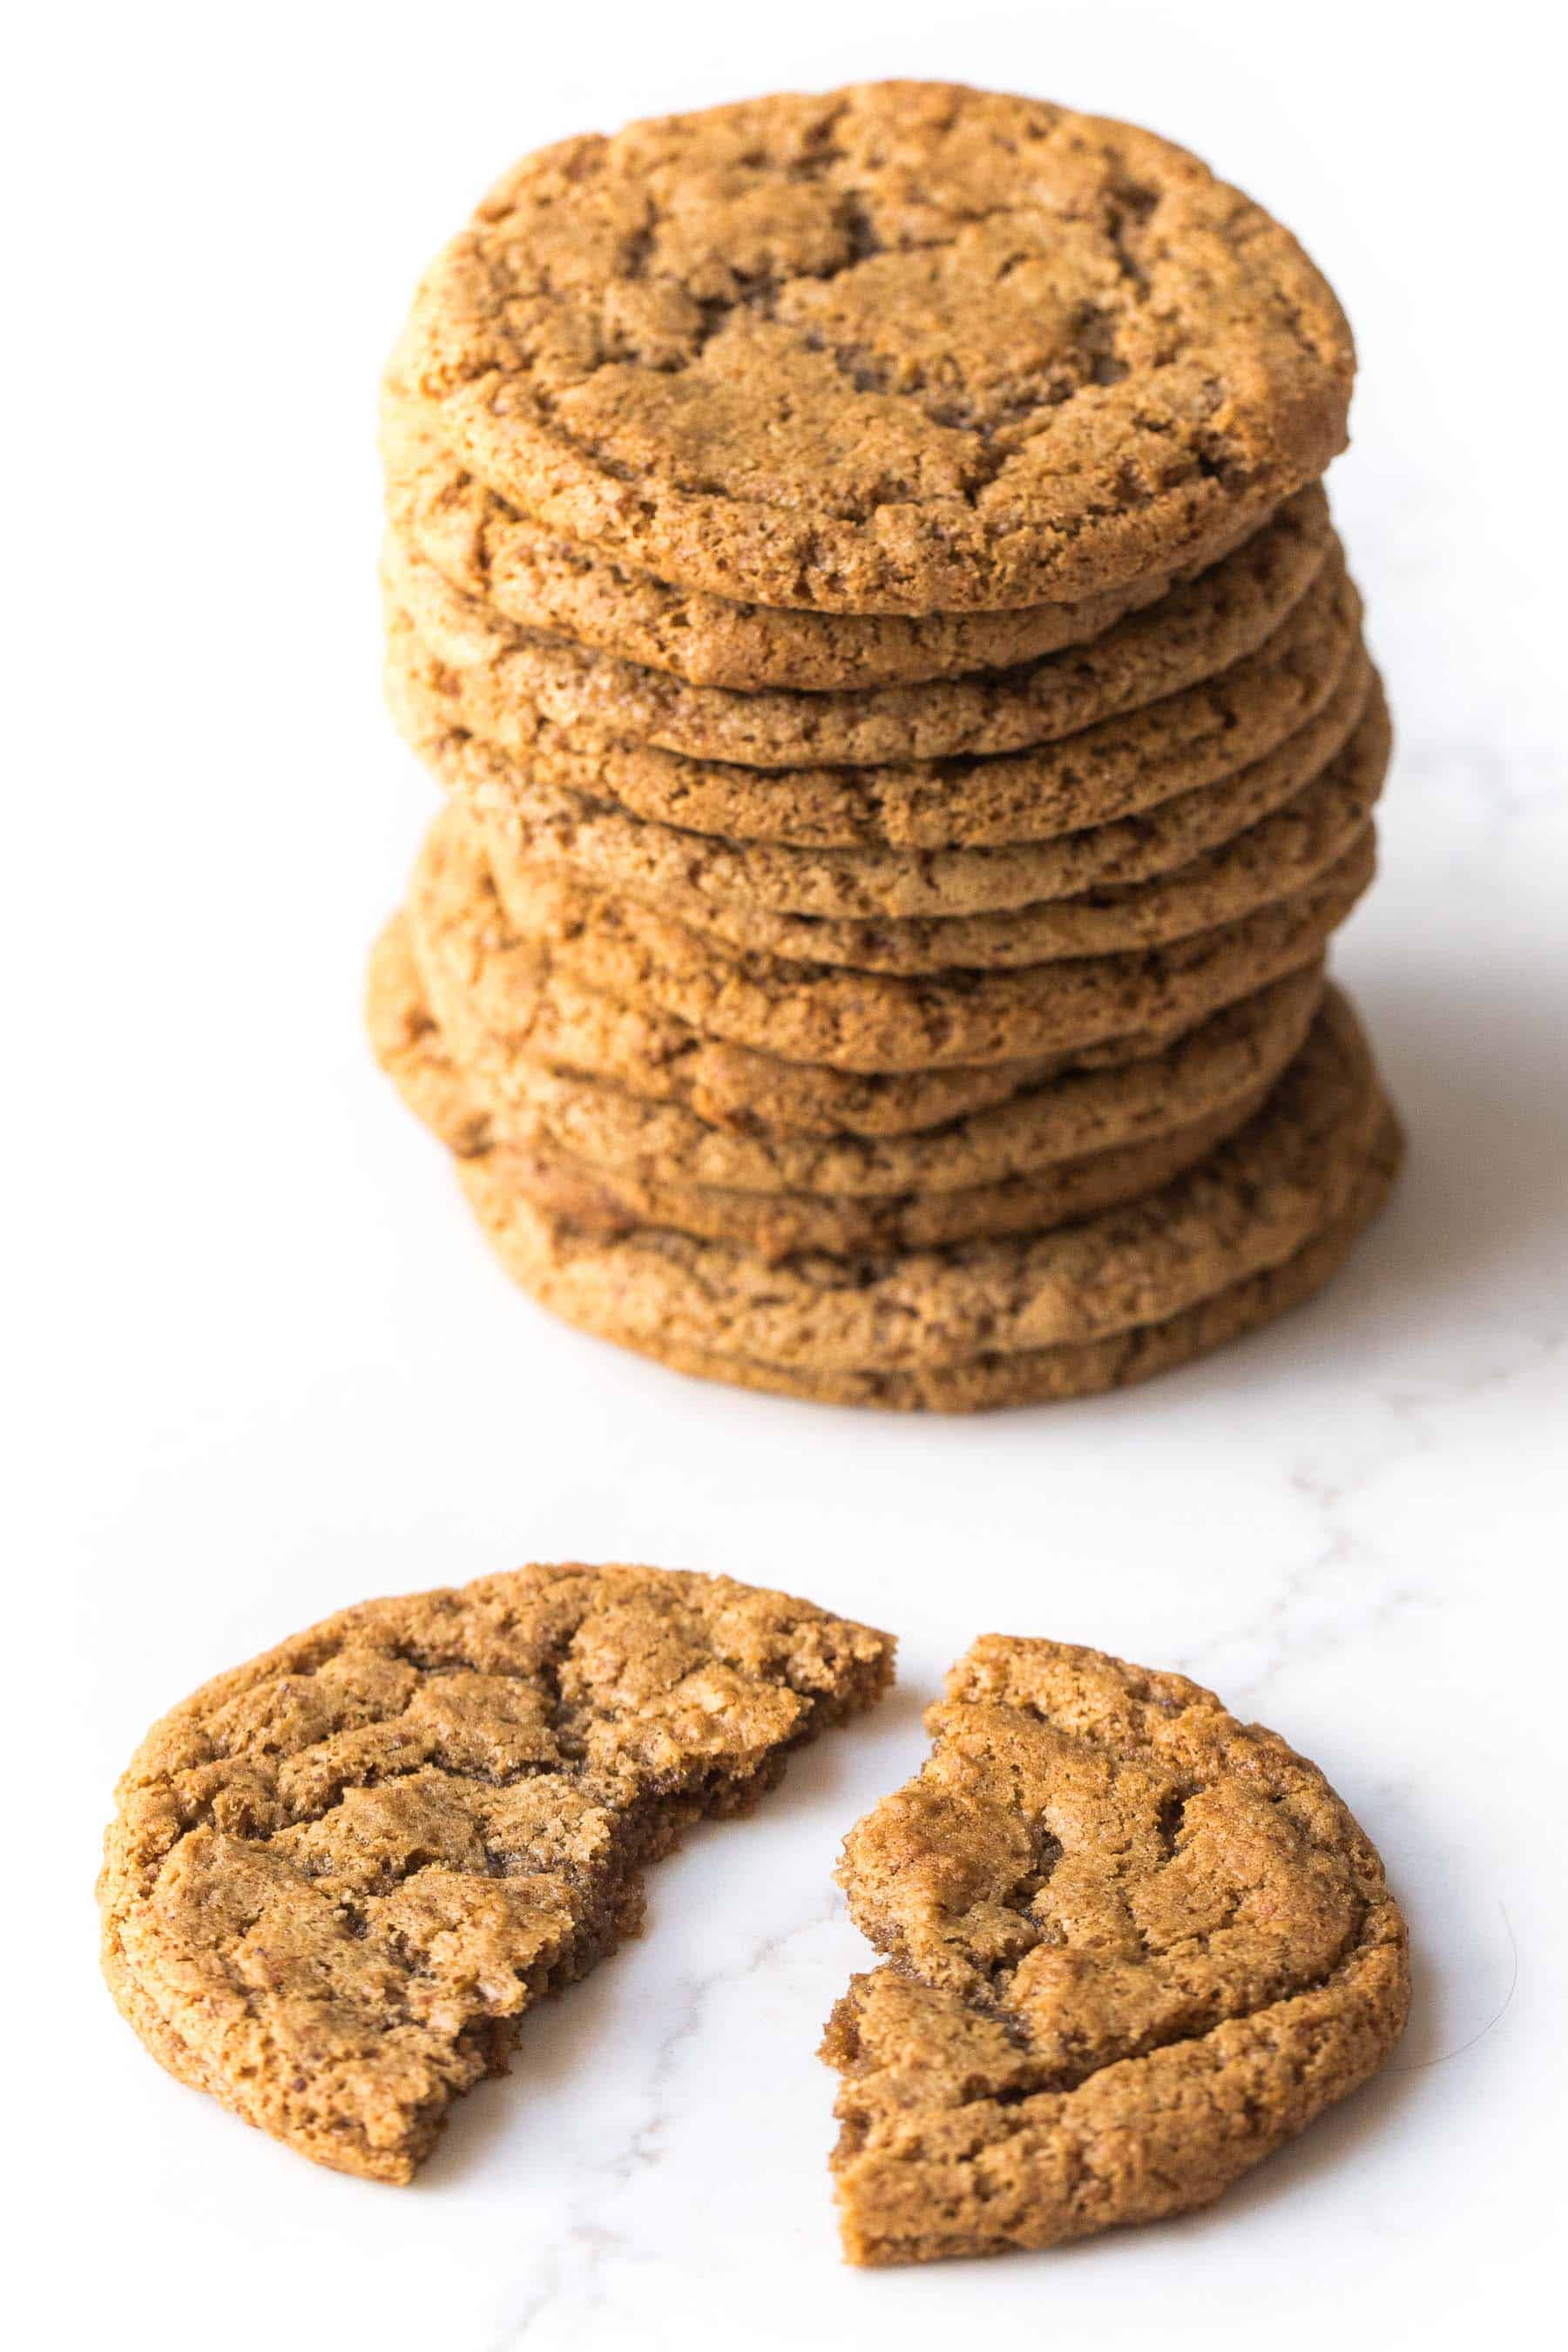 stack of almond butter cookies and 1 cracked cookie on a white background